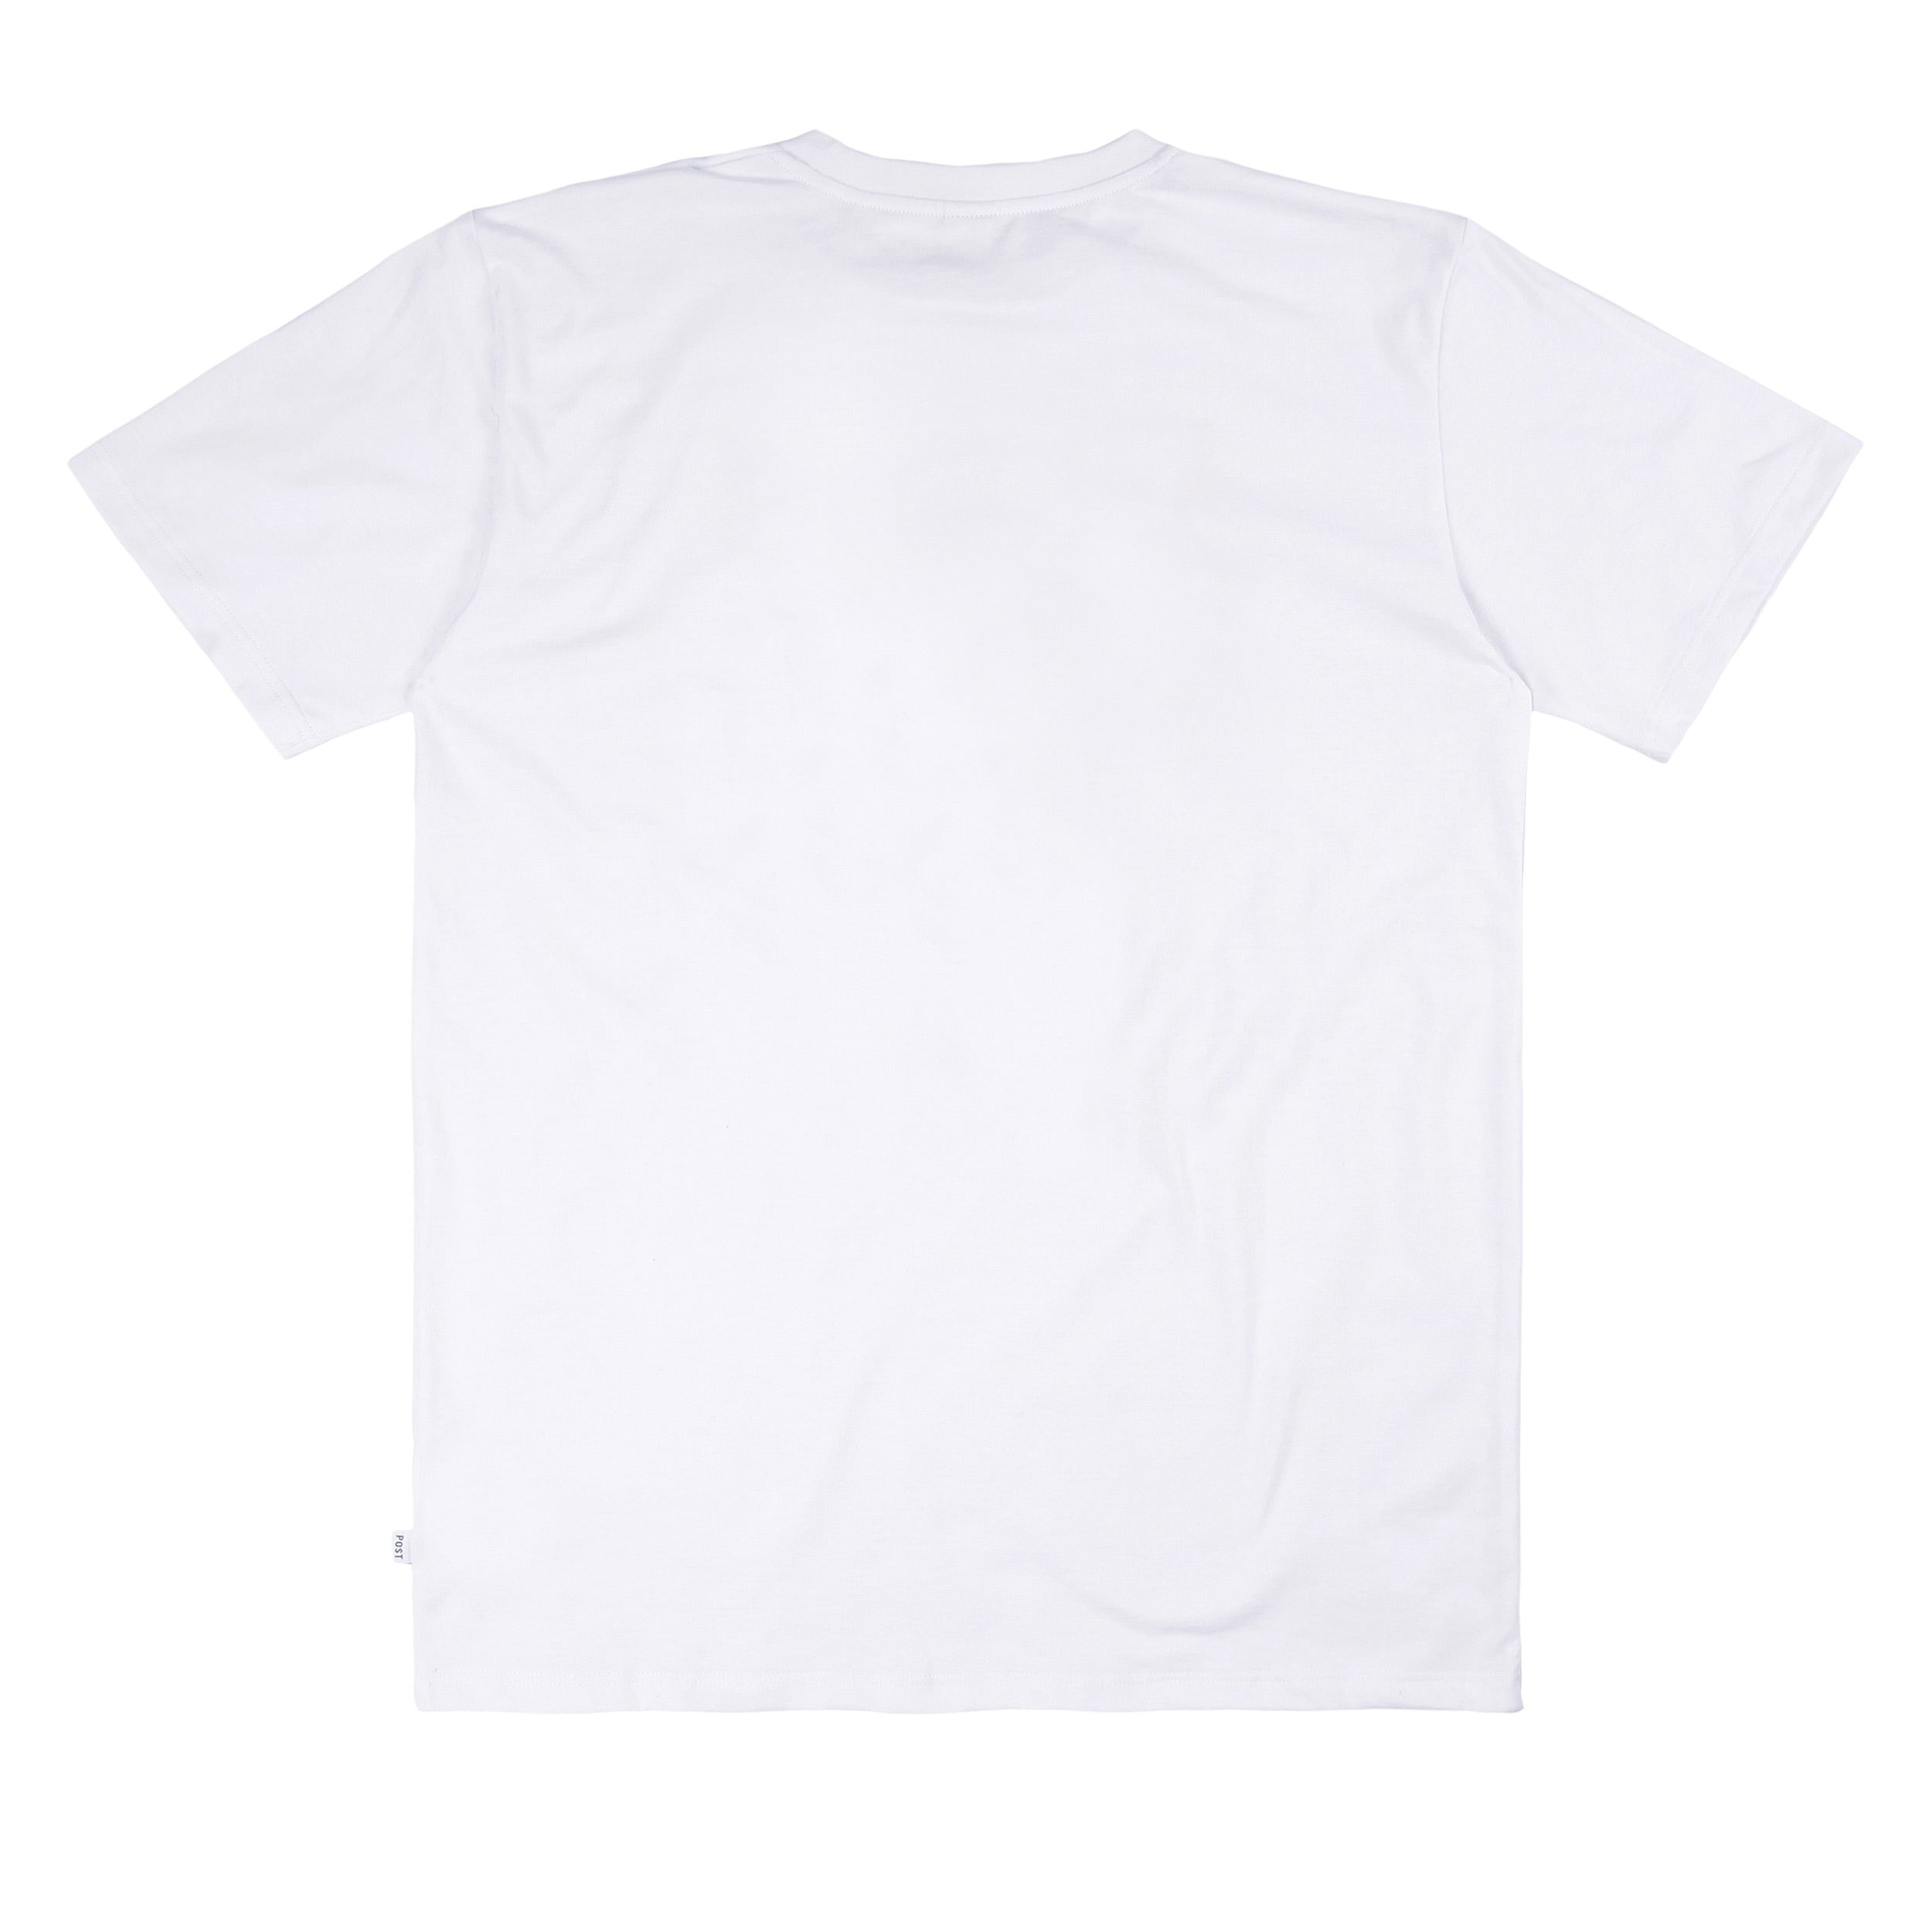 Post Kitsch One T-shirt White